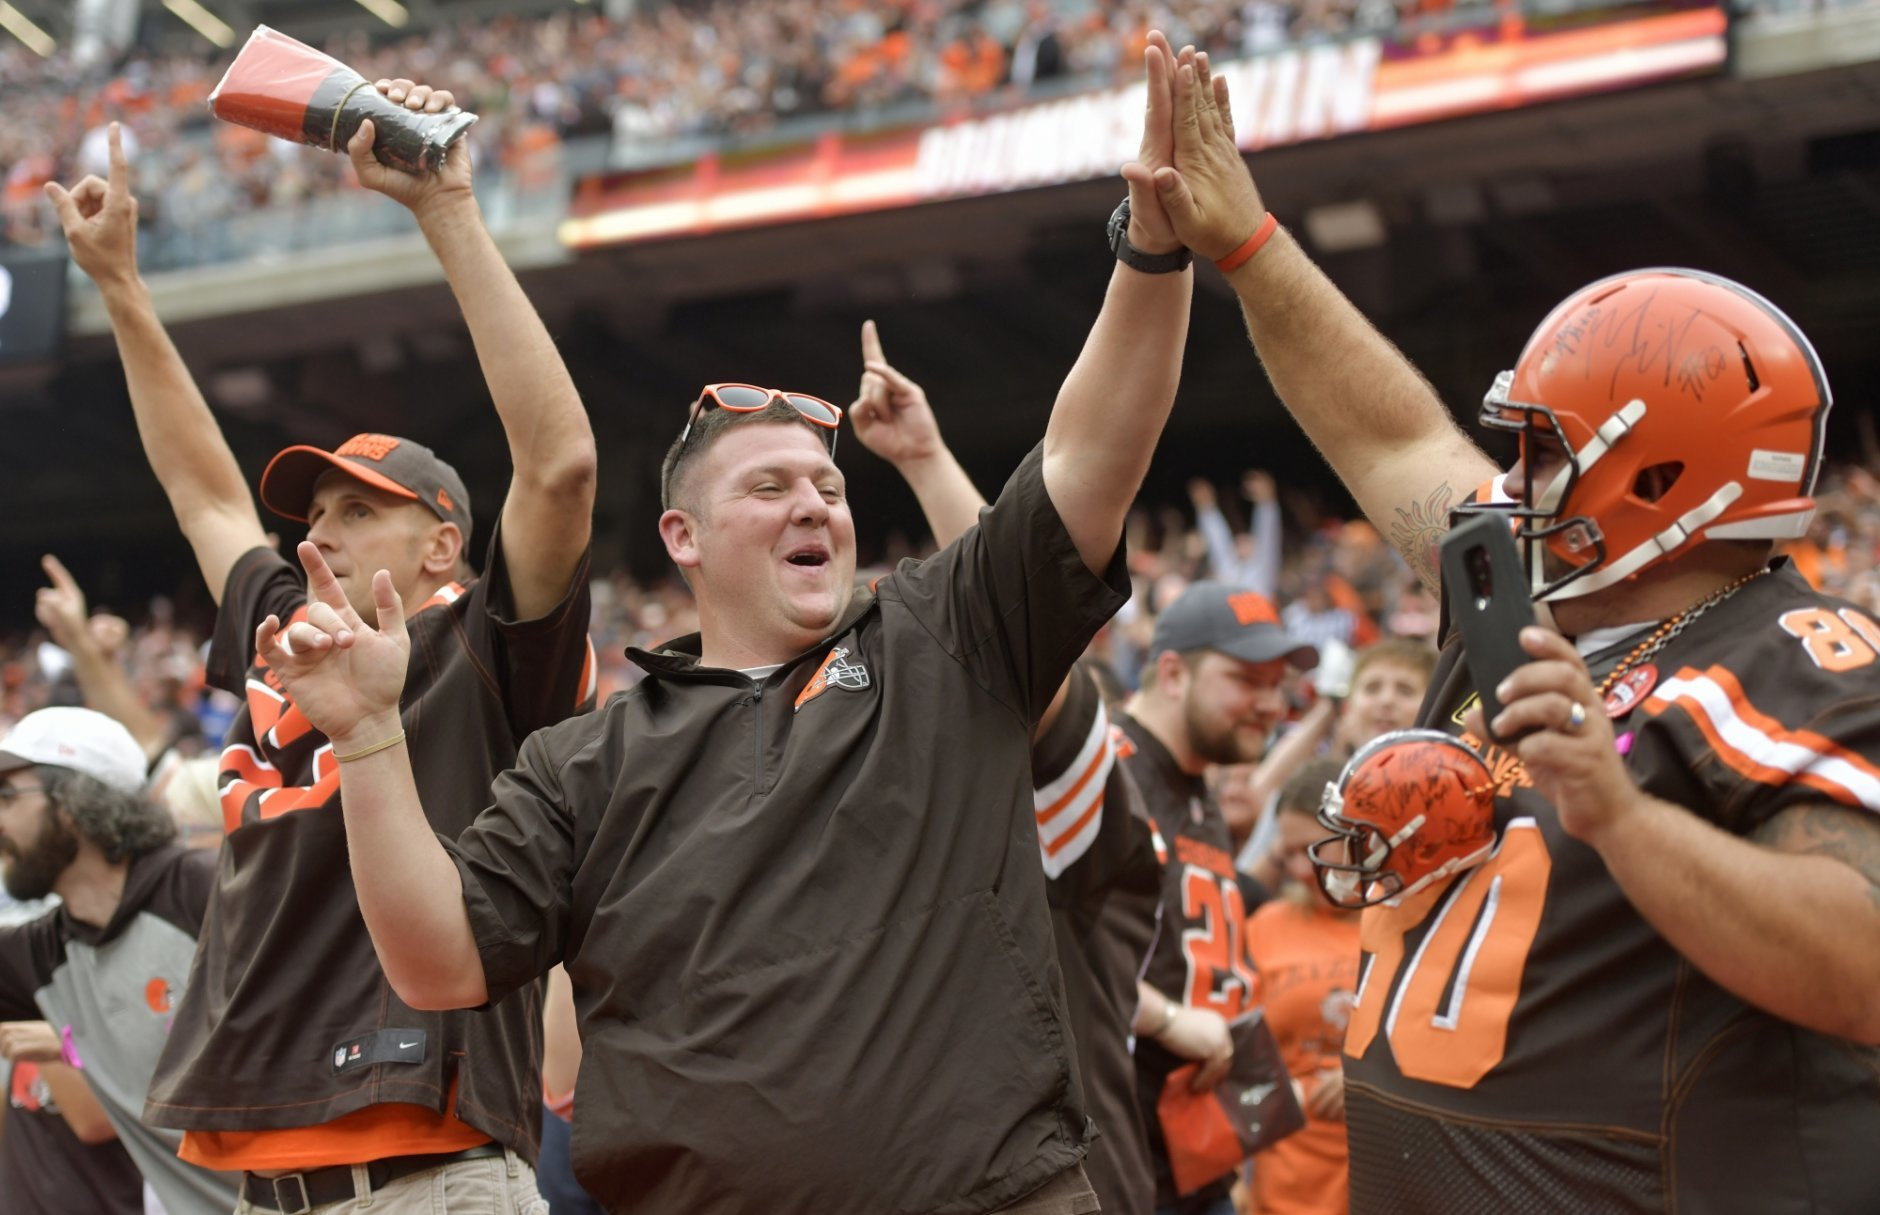 Cleveland Browns fans celebrate after the Browns defeated the Baltimore Ravens 12-9 during overtime in an NFL football game, Sunday, Oct. 7, 2018, in Cleveland. (AP Photo/David Richard)